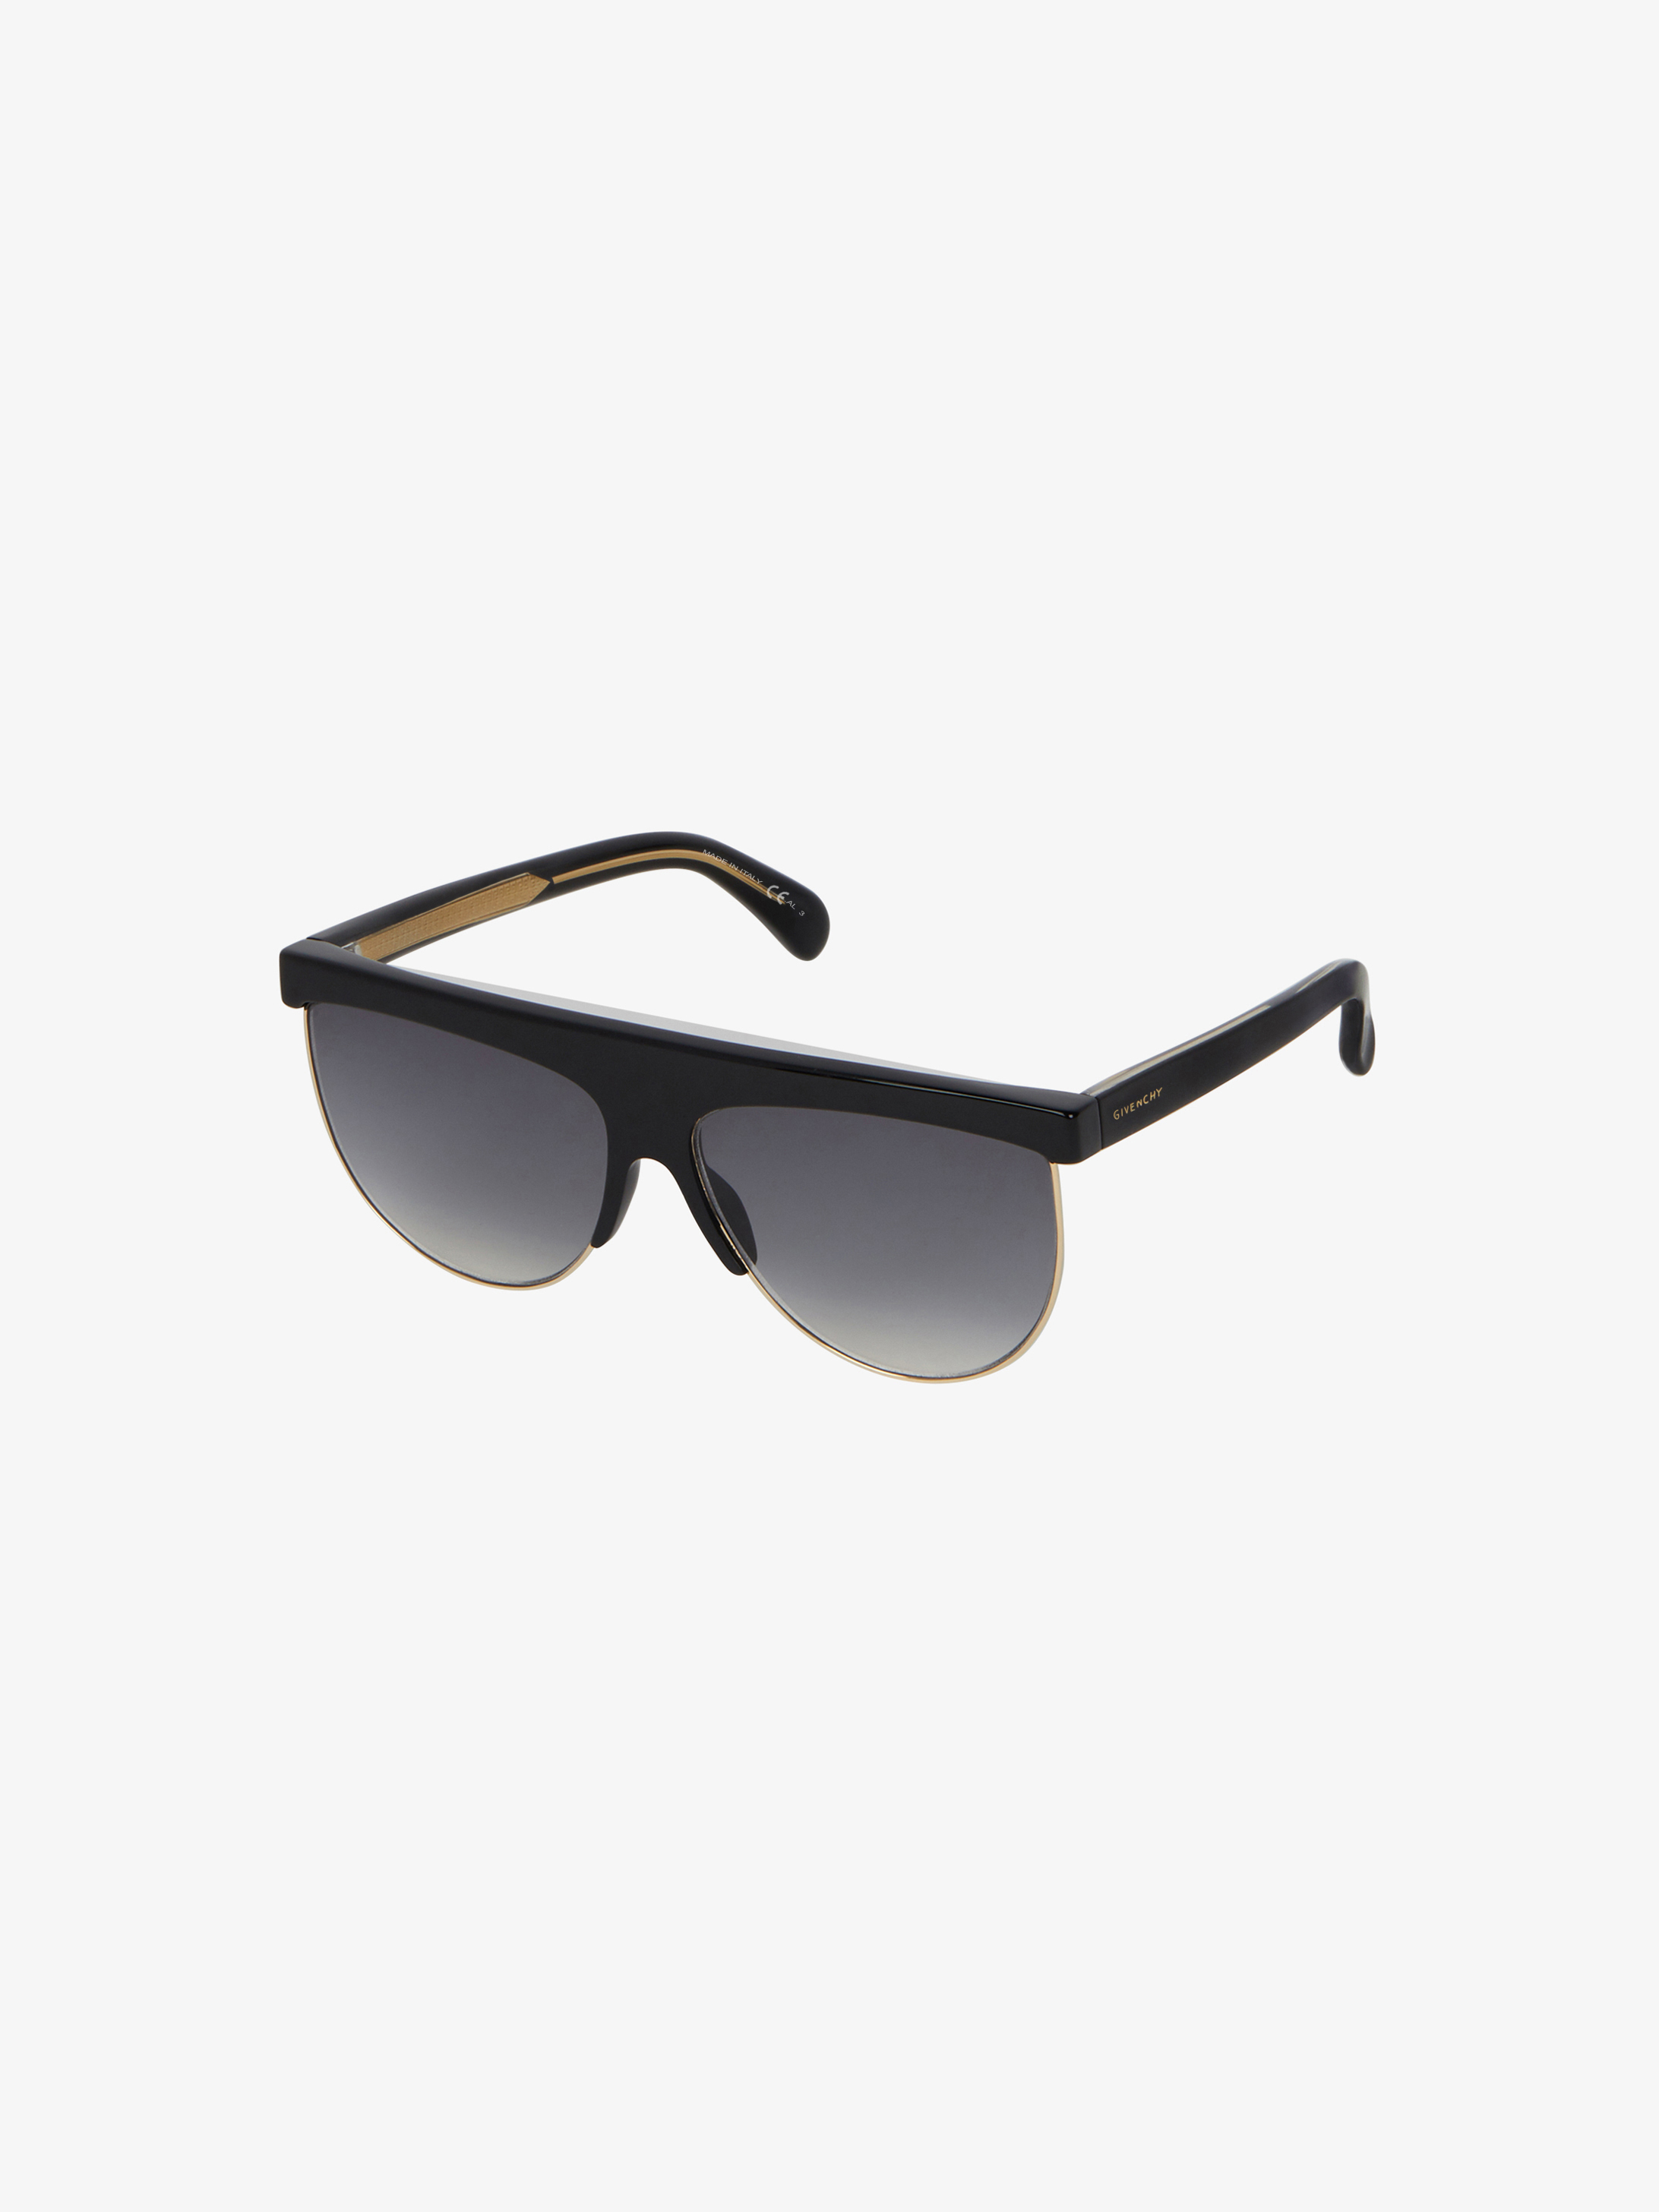 GV Squared sunglasses in acetate and metal